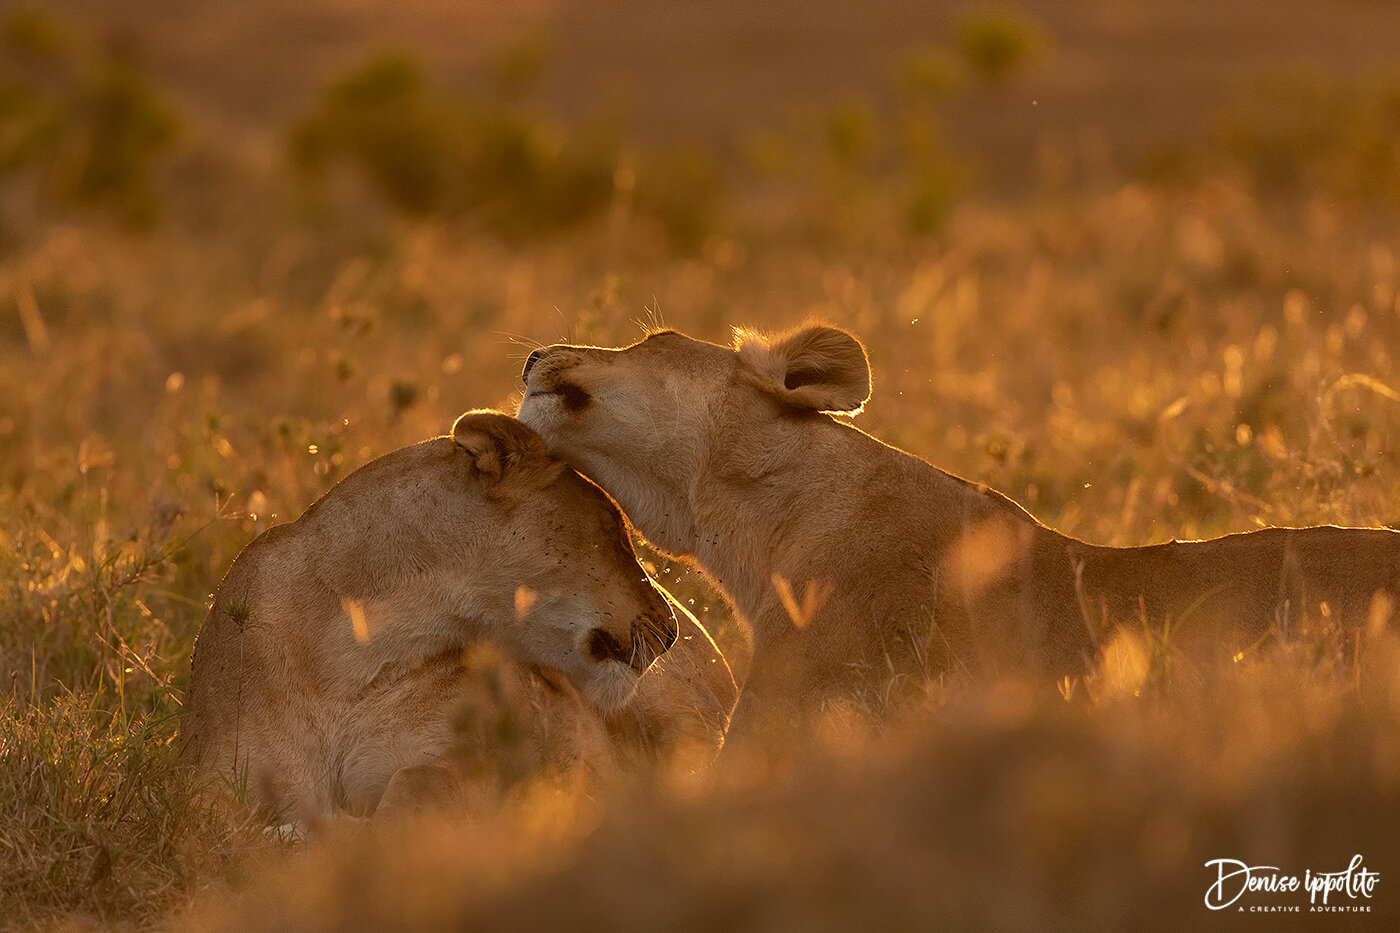 Two lionesses showing a tender moment.